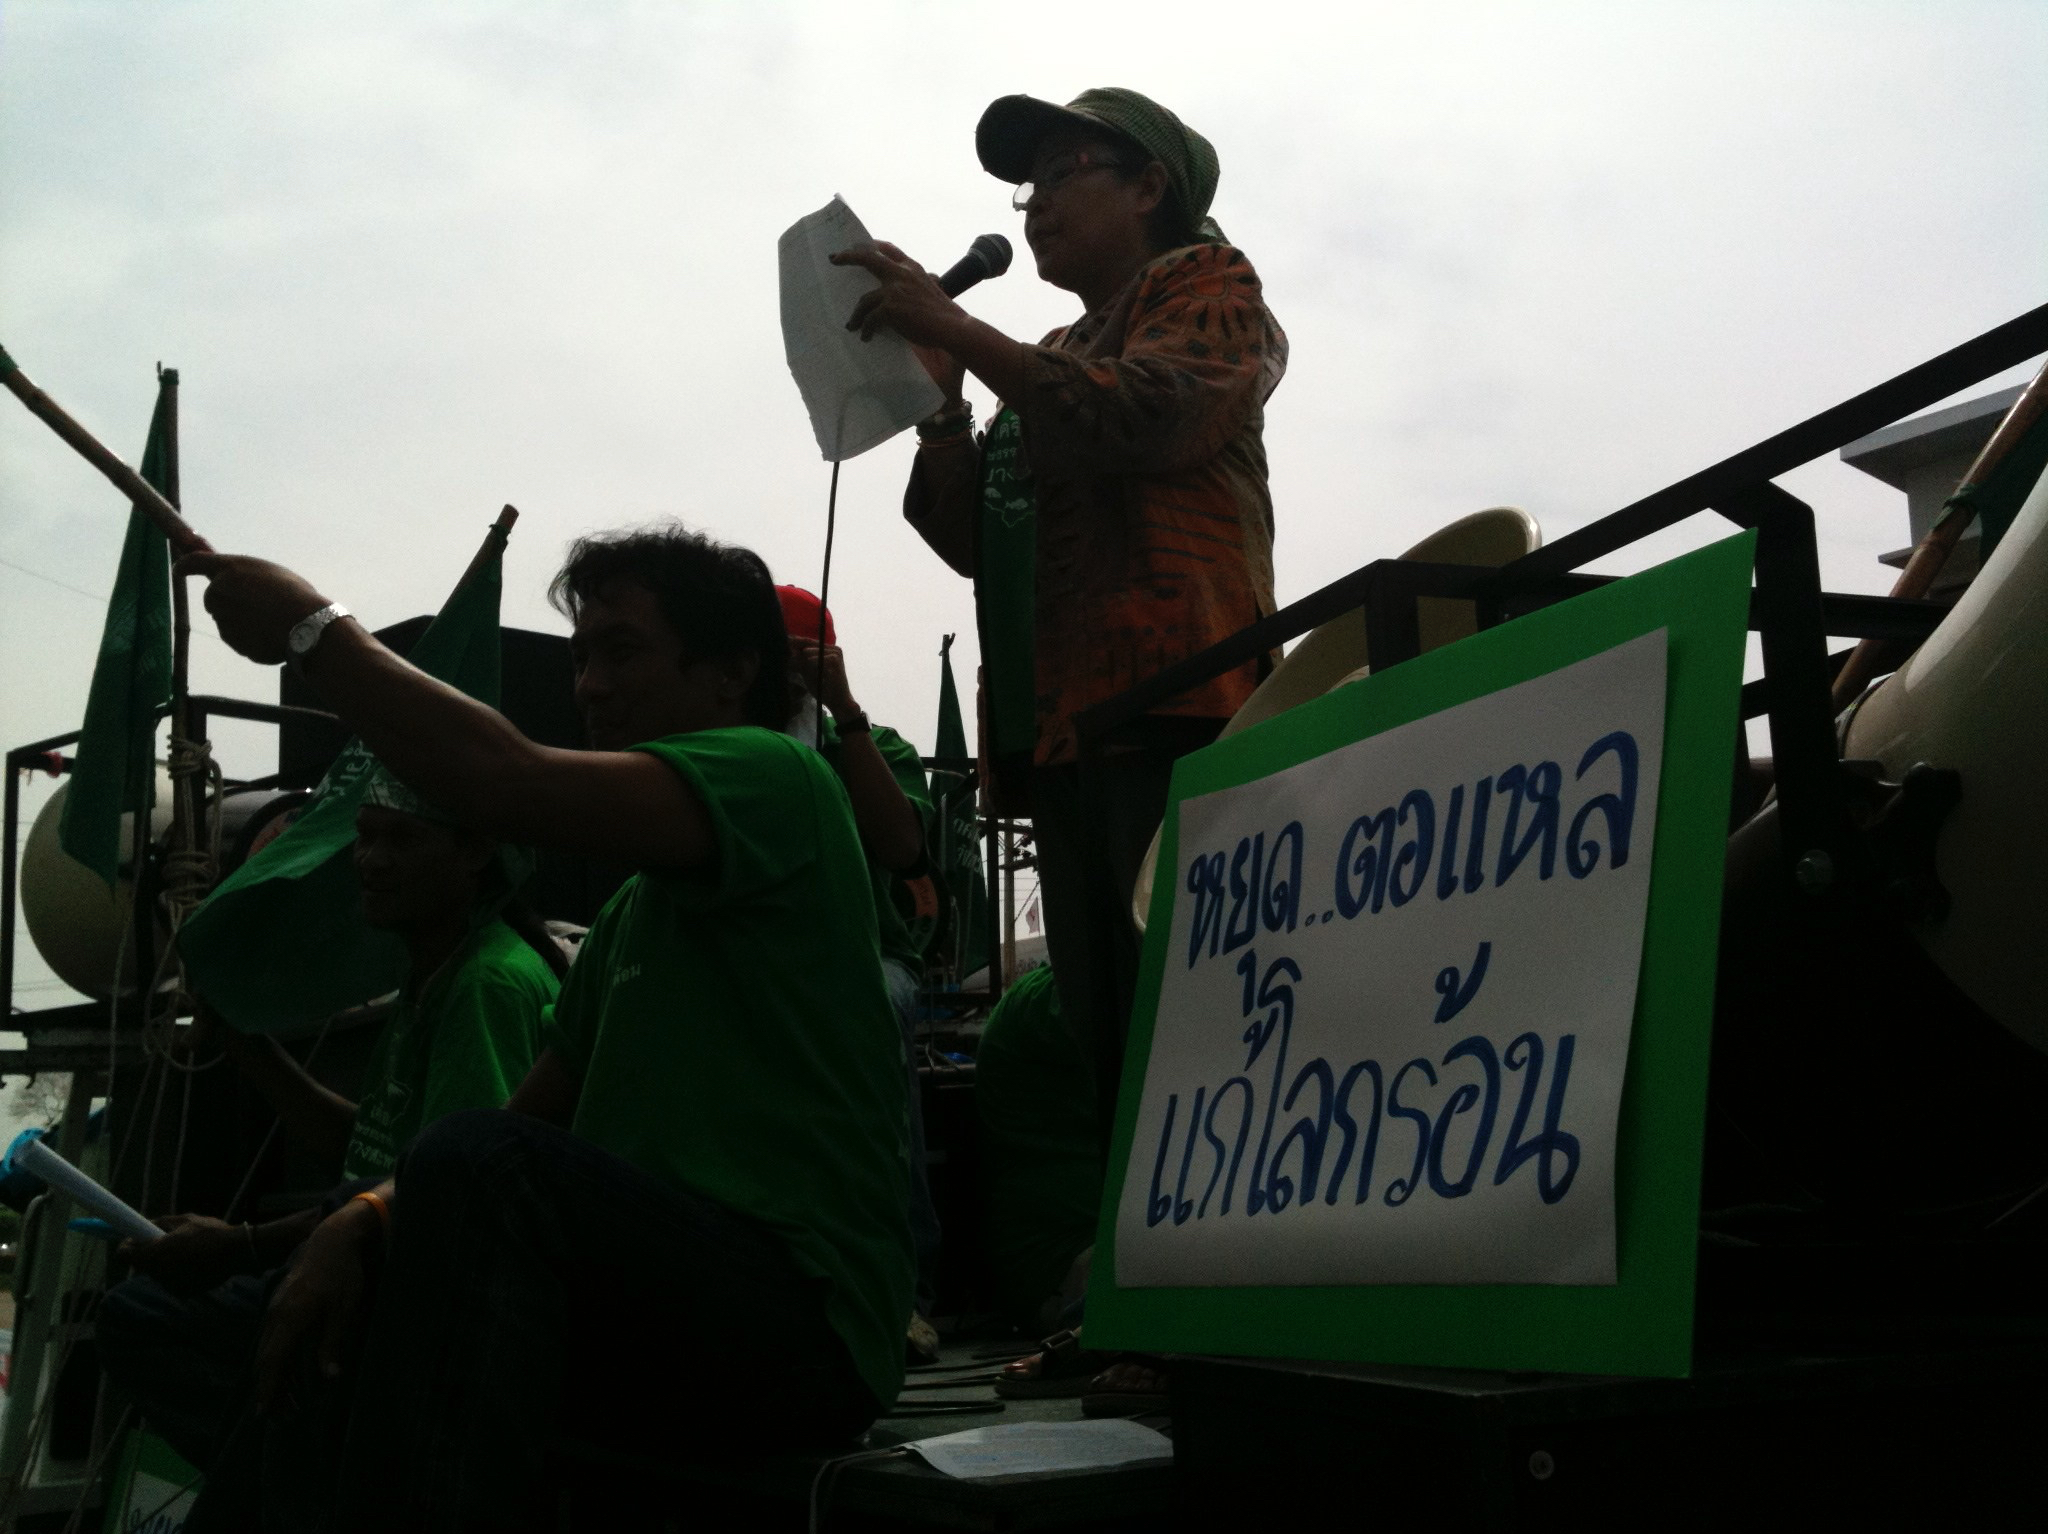 Thai Climate Justice's Protest at Surat Thani 2010